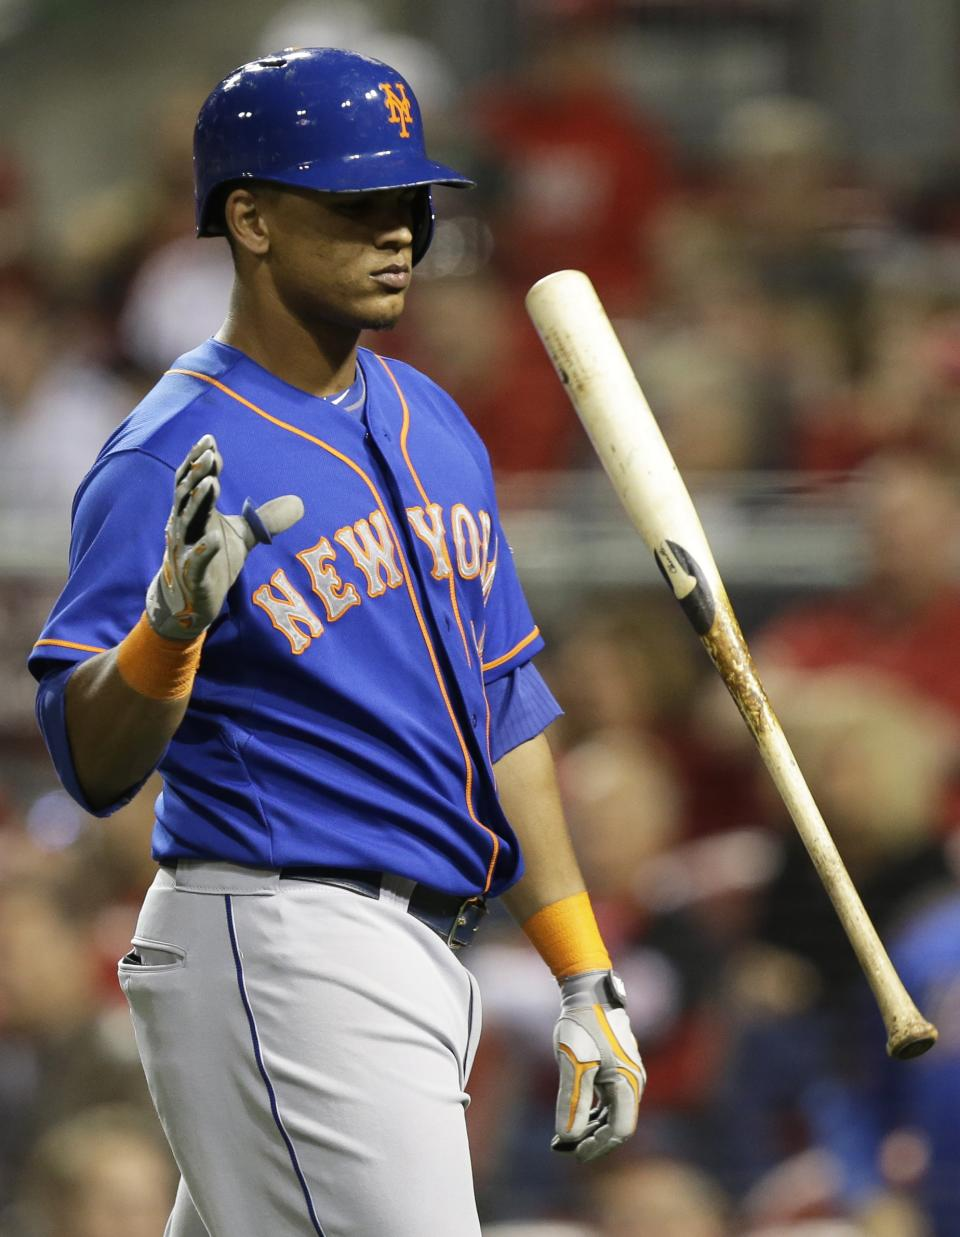 New York Mets' Juan Lagares flips his bat after striking out against Cincinnati Reds relief pitcher Aroldis Chapman in the ninth inning of a baseball game, Monday, Sept. 23, 2013, in Cincinnati. Cincinnati won 3-2 in 10 innings. (AP Photo/Al Behrman)